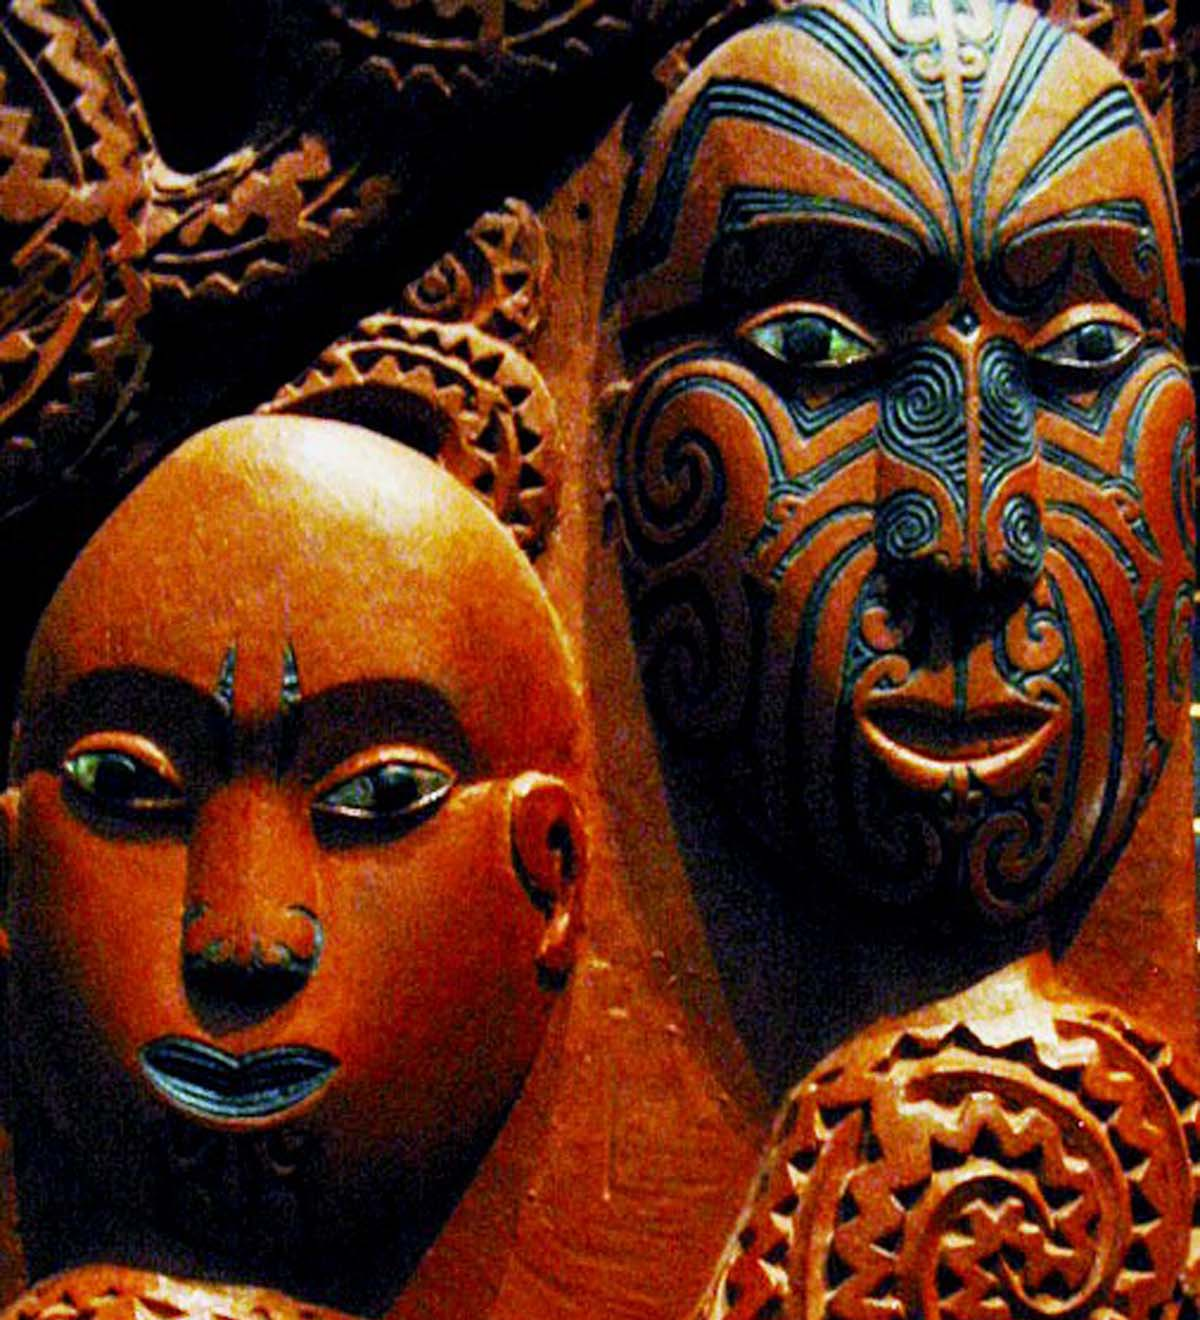 Maori Religion: Maori Culture - Susan Stockton